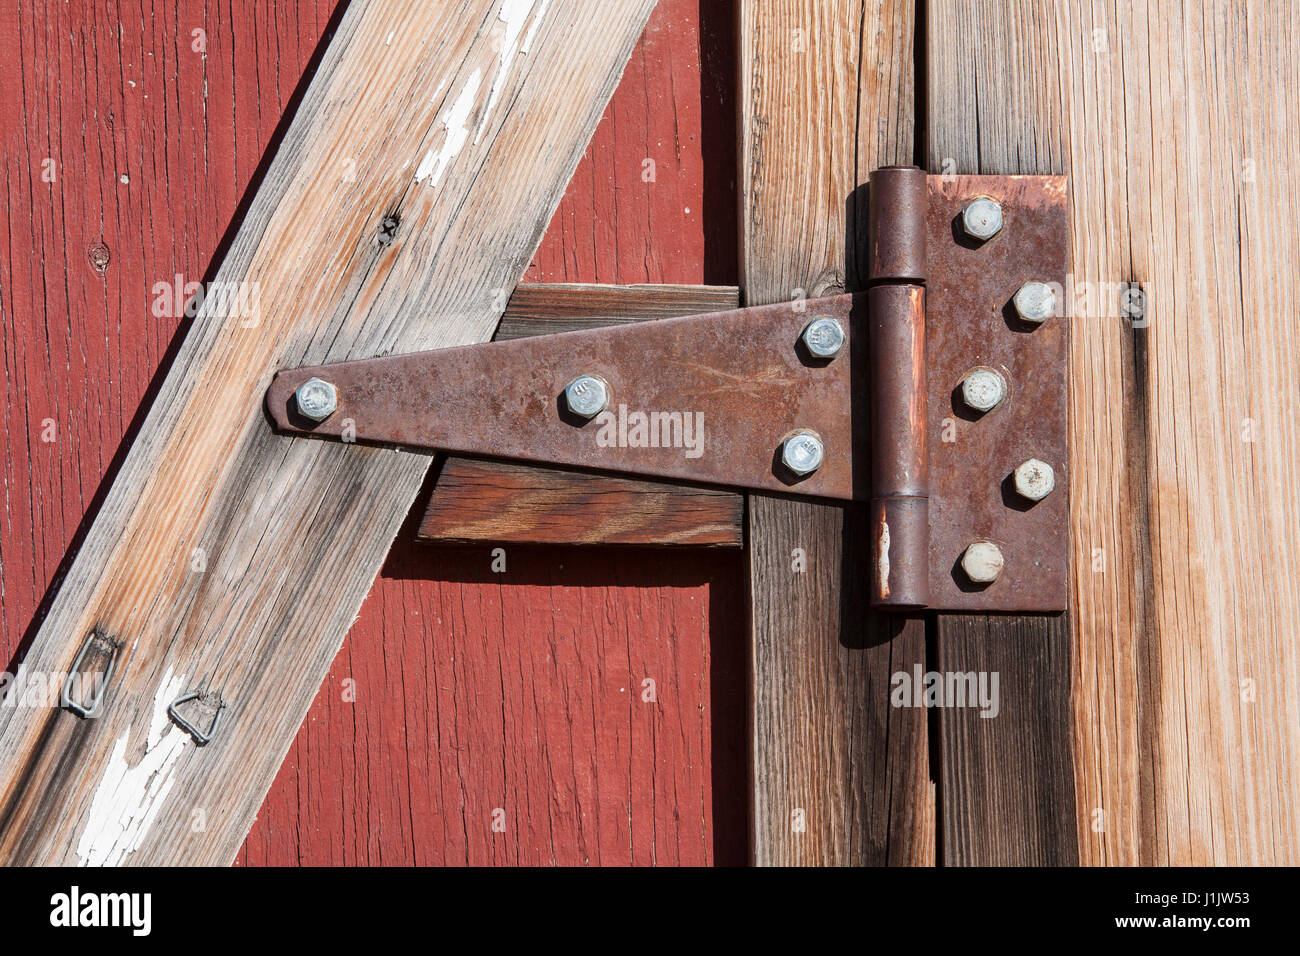 Closeup detail of rusting hinge on a weathered barn door. Hodgepodge of fasteners hold hinge and door together. - Stock Image